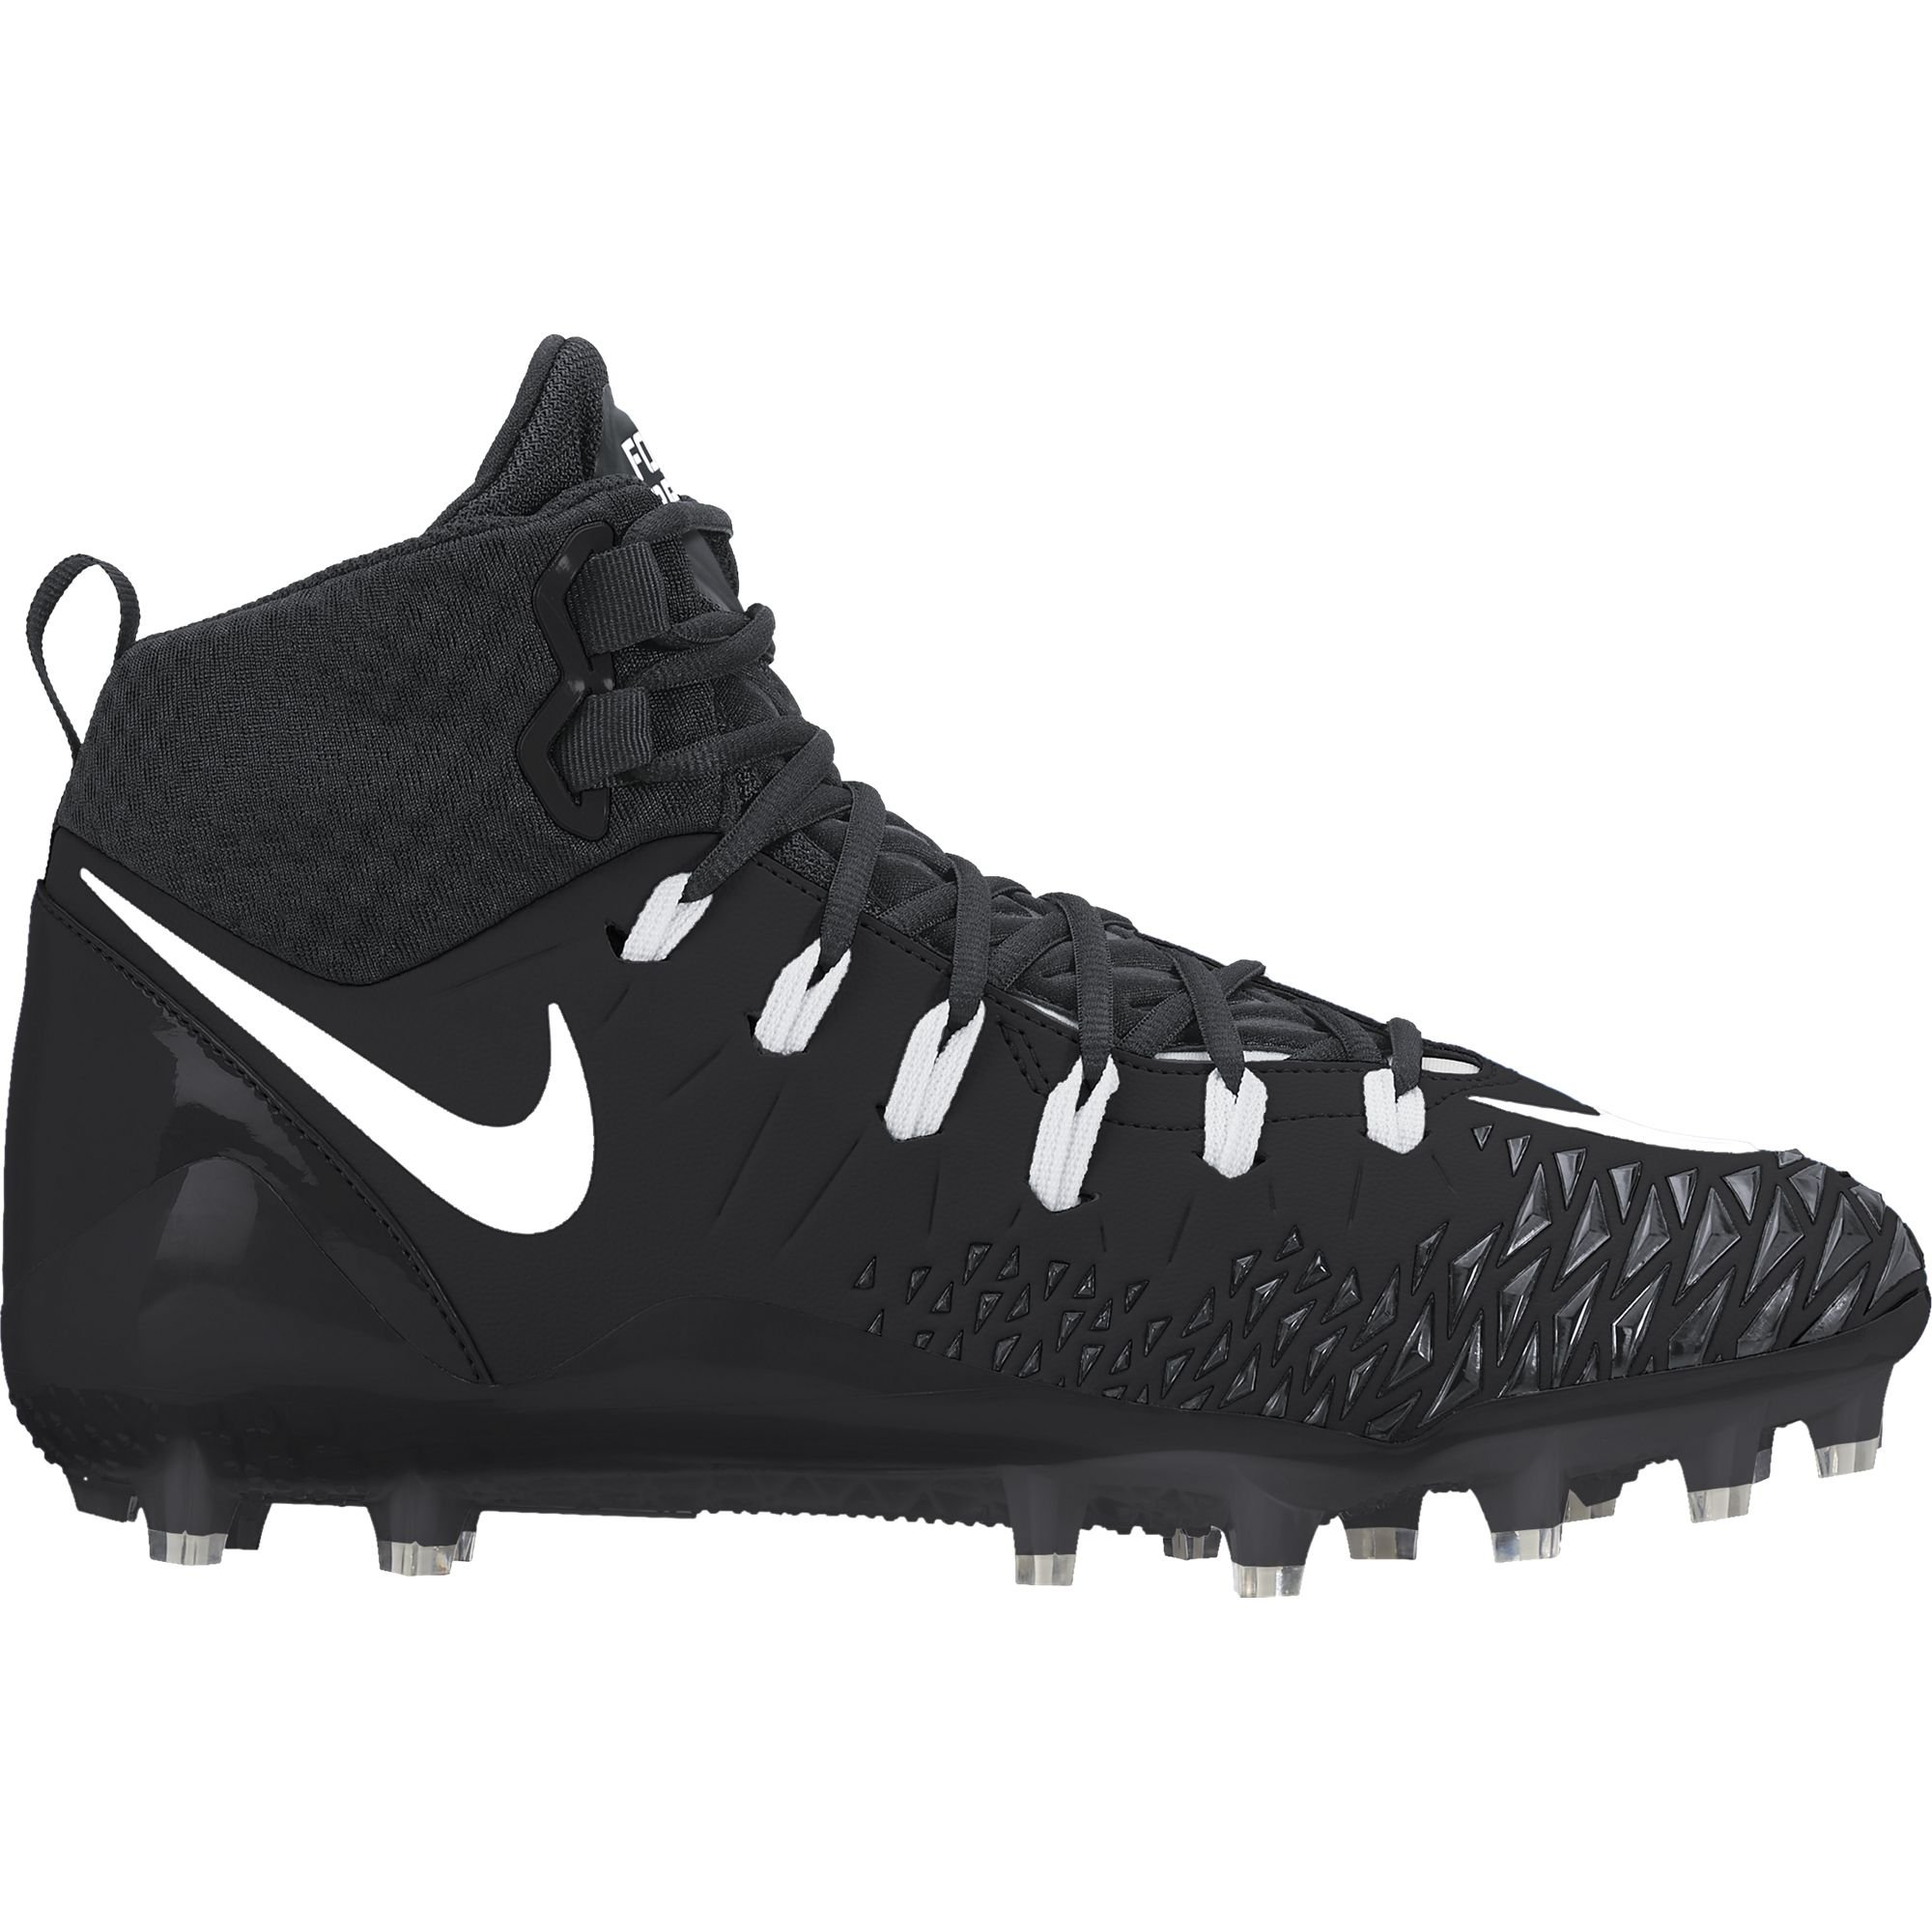 NIKE Men's Force Savage Pro Football Cleat Black/White/Anthracite Size 11.5 M US